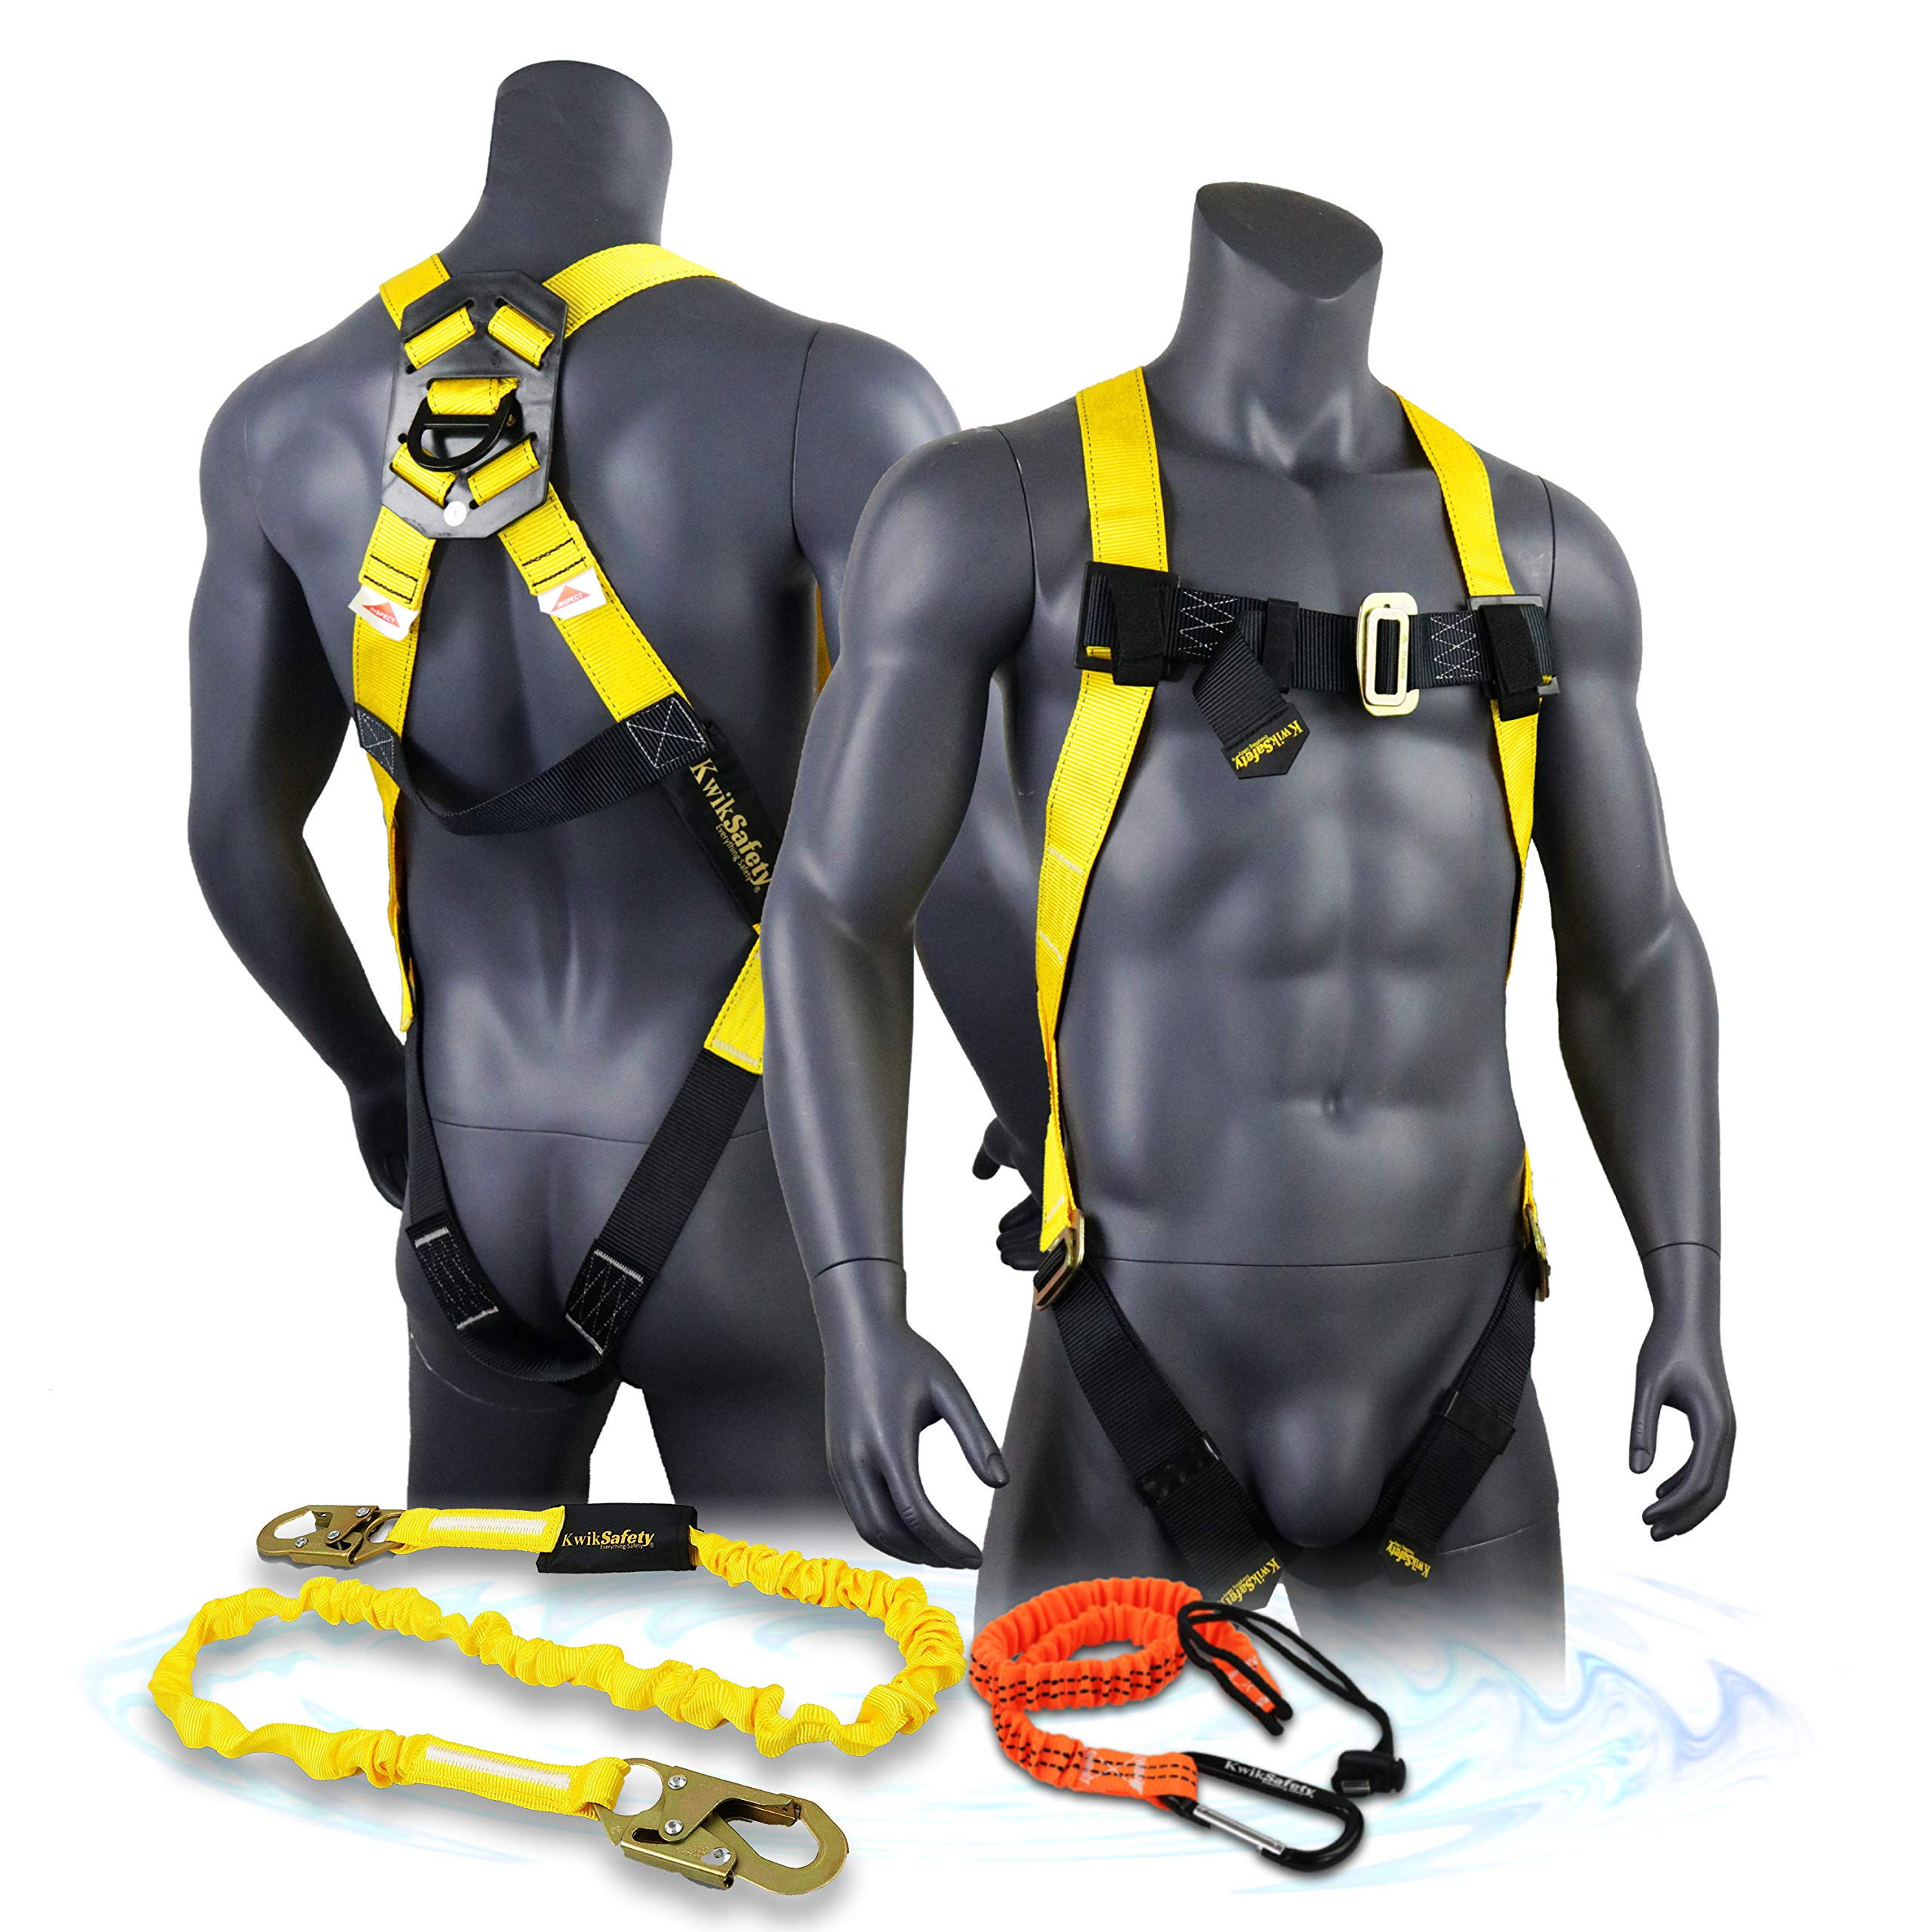 KwikSafety (Charlotte, NC) TORNADO COMBO | 1 D-Ring Full Body Safety Harness, 6' Lanyard, Tool Lanyard, ANSI OSHA PPE Fall Protection Arrest Restraint Equipment Universal Construction Roofing Bucket by KwikSafety